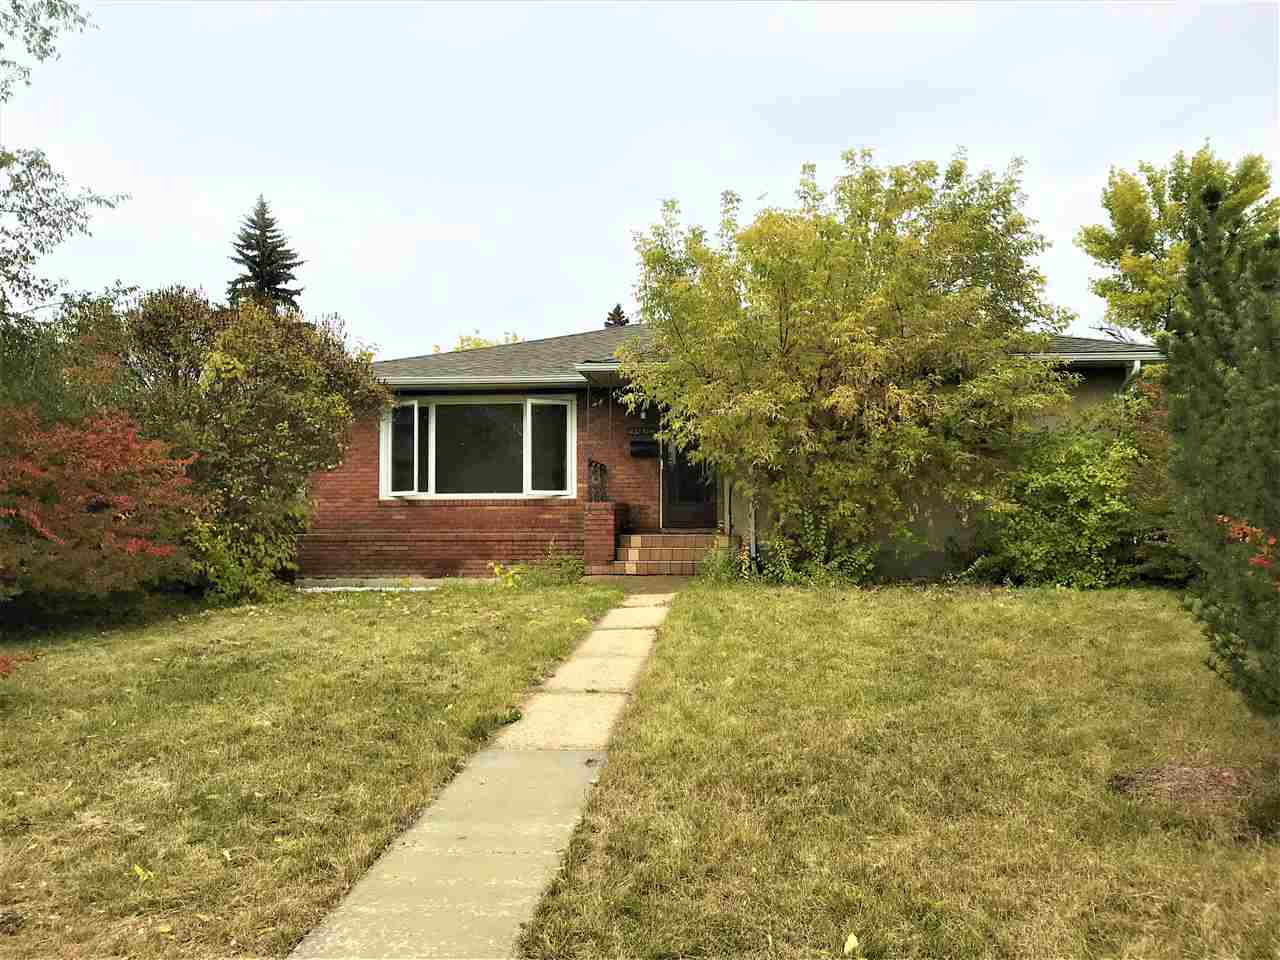 Location, location, location!!! Short walking distance to Southgate Mall and Southgate LRT. This well-maintained 8-bedroom bungalow has two kitchens, two laundries, three bath rooms and a separate entrance to the basement. Recent upgrades include: shingles (2013), soffit and fascia (2013) and sump pump (2012). A shining star in the community of Lendrum Place! This is a must see!!